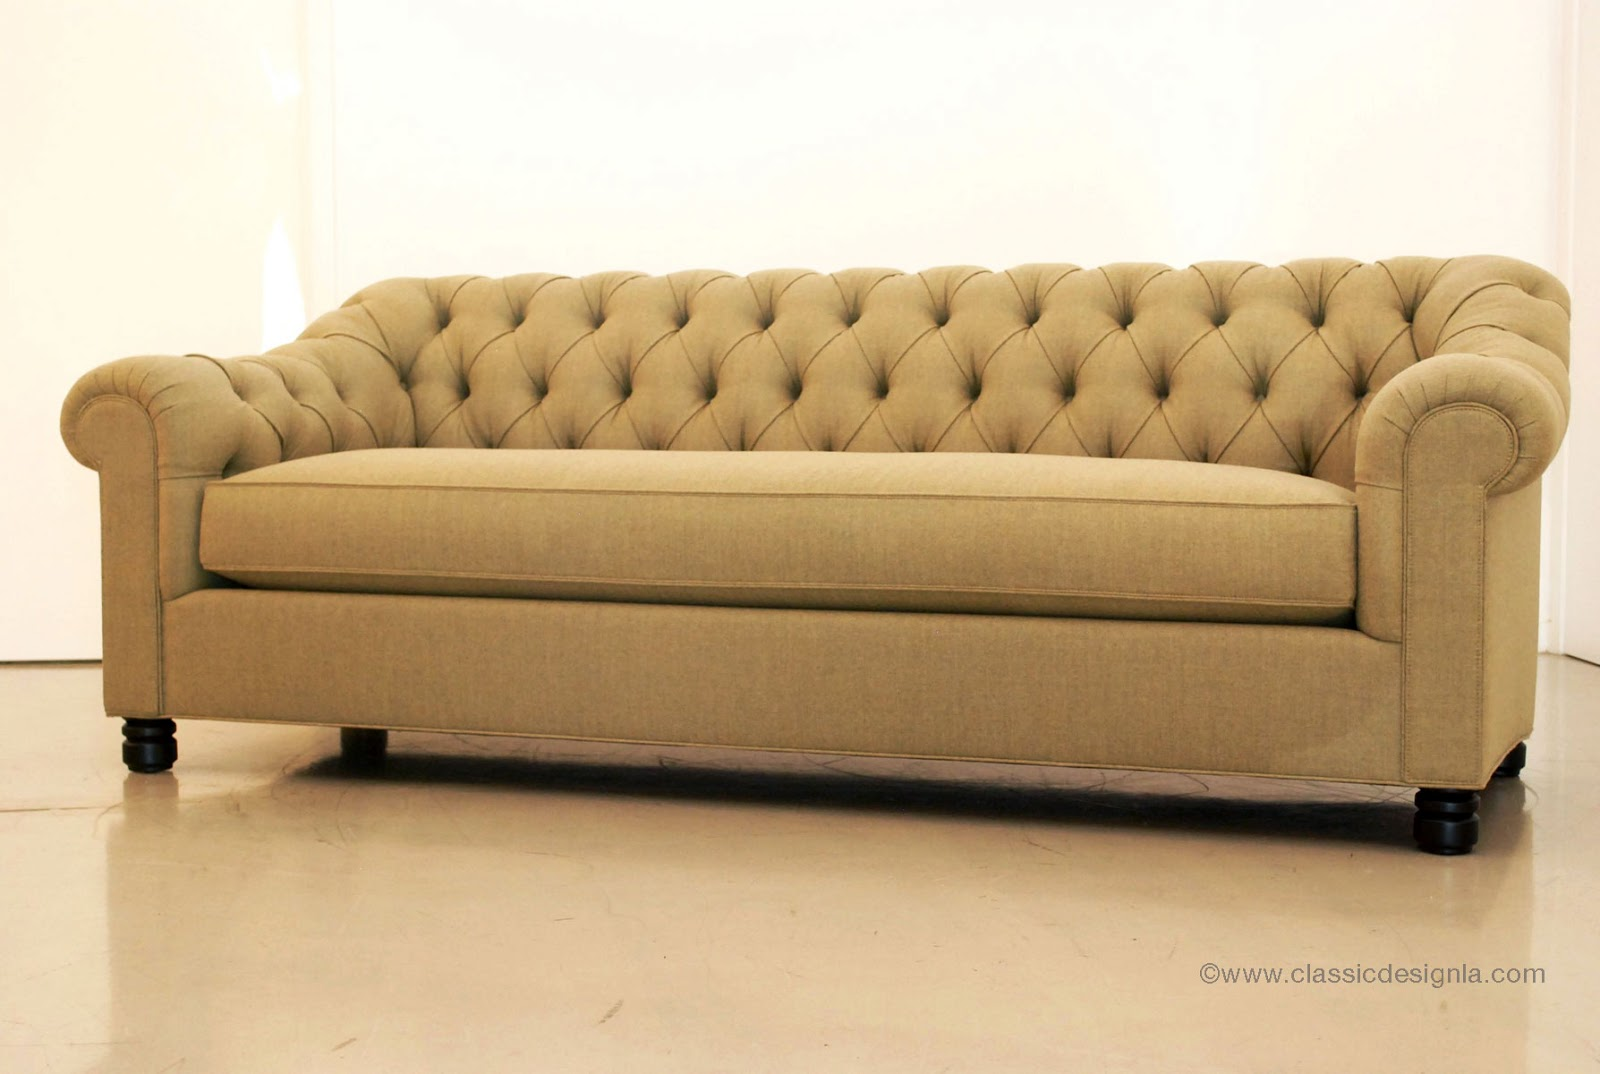 Custom design sofa custom made modern contemporary sofa for Design sofa